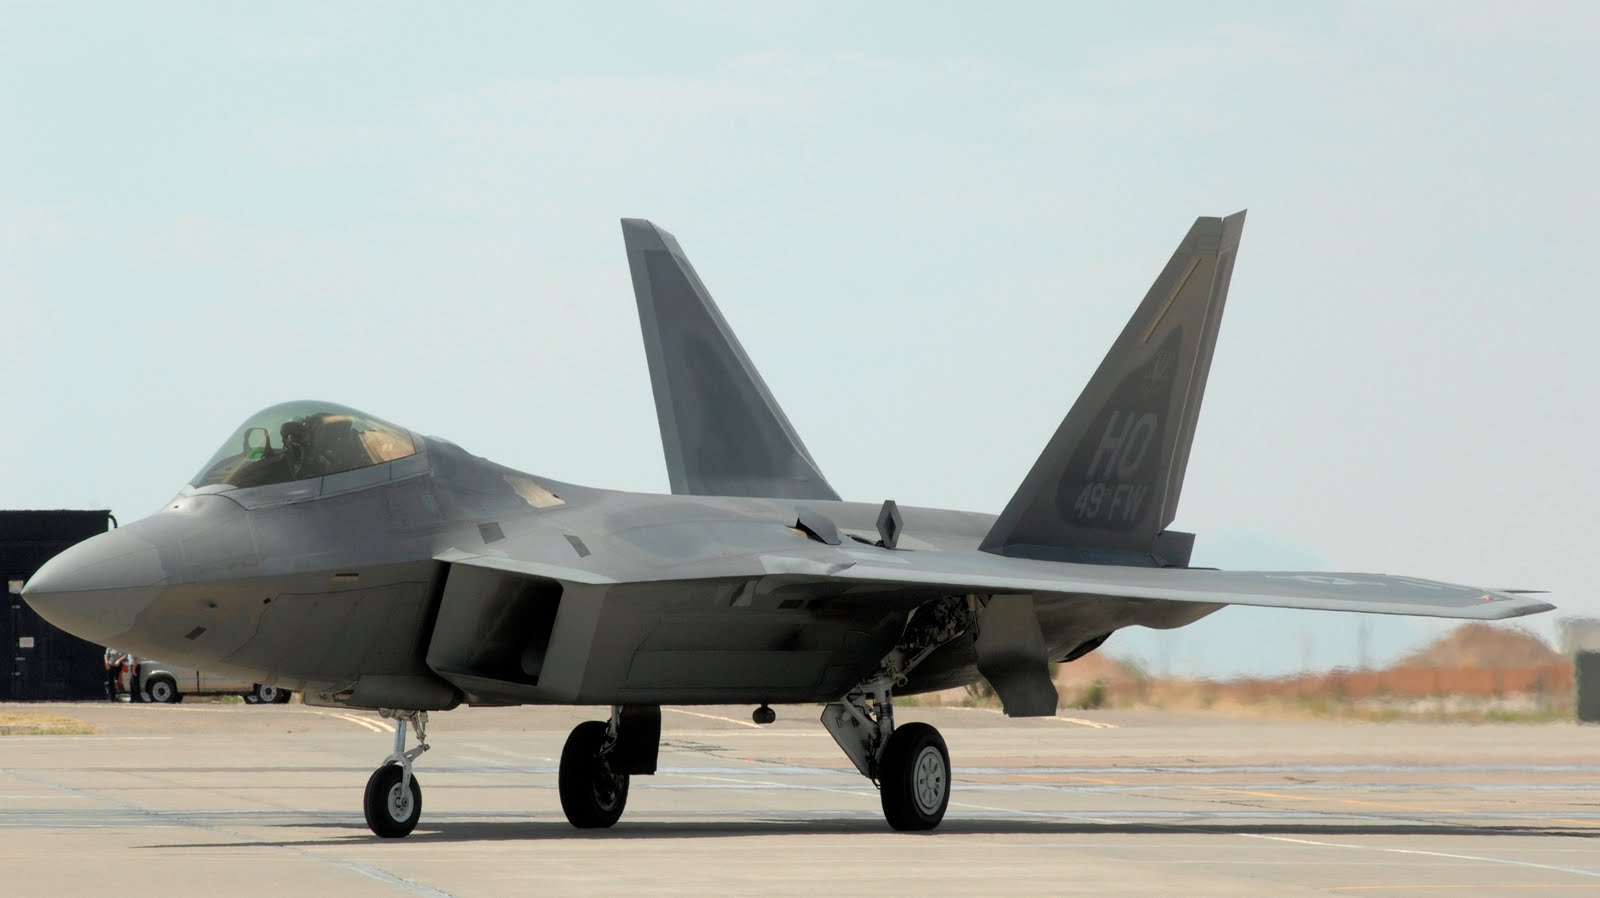 http://3.bp.blogspot.com/_ja676MG45Zg/TIPlajaHcHI/AAAAAAAAEjU/NH6rztks40U/s1600/f22-raptor-grounded-close.jpg